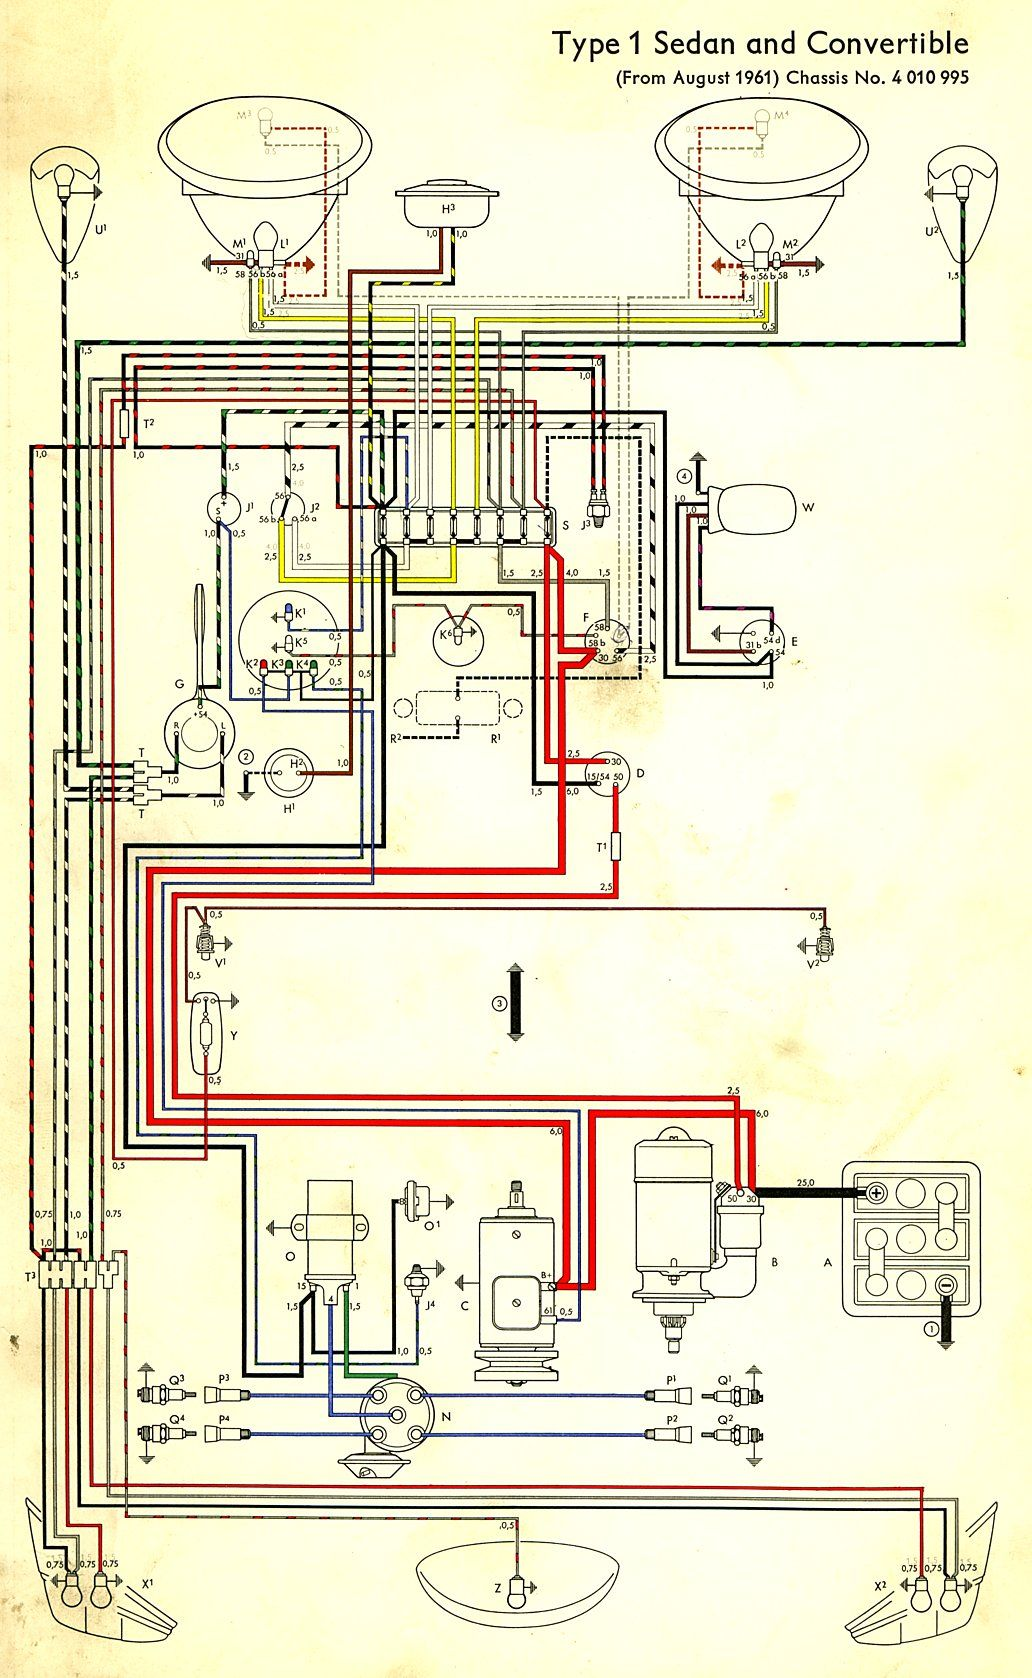 Wiring Diagram In Color 1964 Vw Bug Beetle Convertible The Samba Vochos Clasicos Motor Vocho Vw Vocho